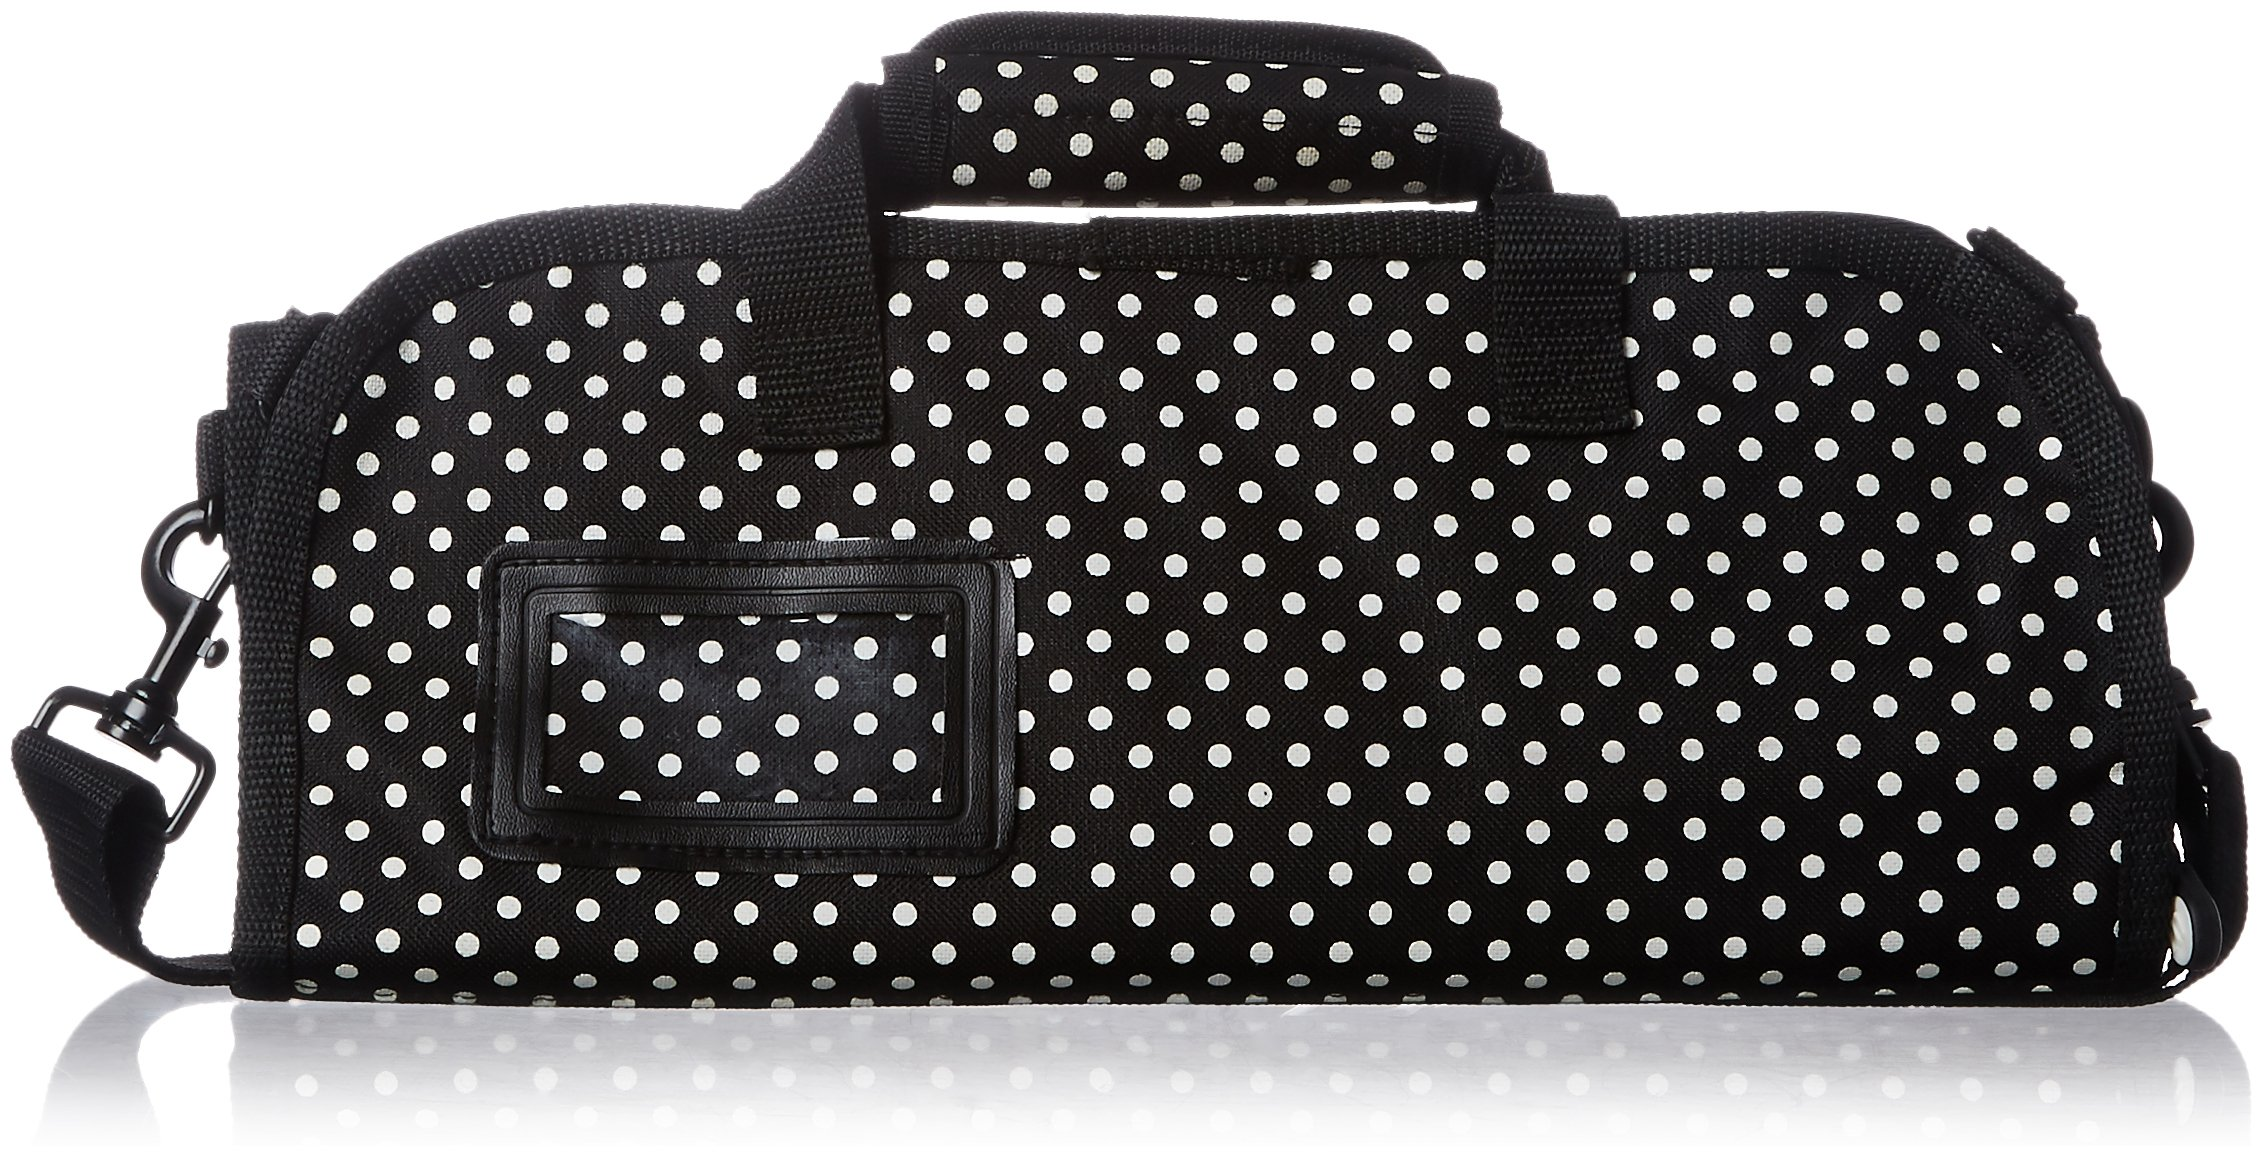 Messermeister Co 6-Pocket Knife Roll, Black with White Dots